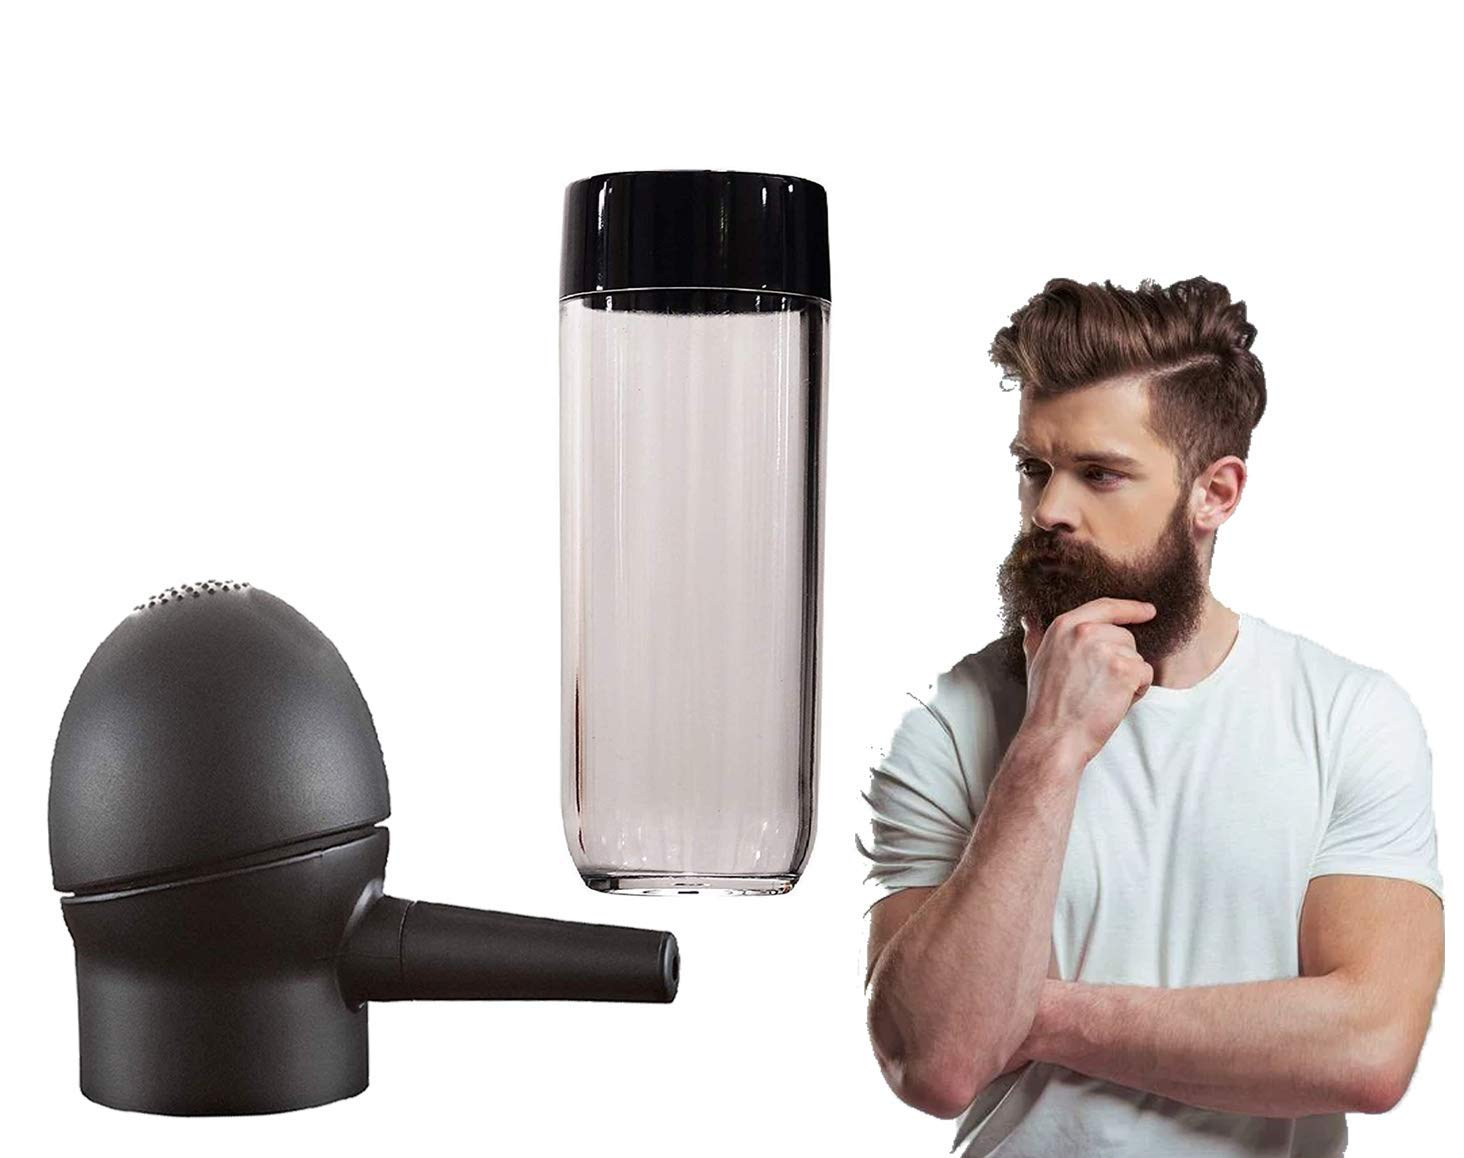 Iyaan Hair Fiber Spray Applicator For Men And Women For Home And Salon Use 20 Grams Black Pack Of 1